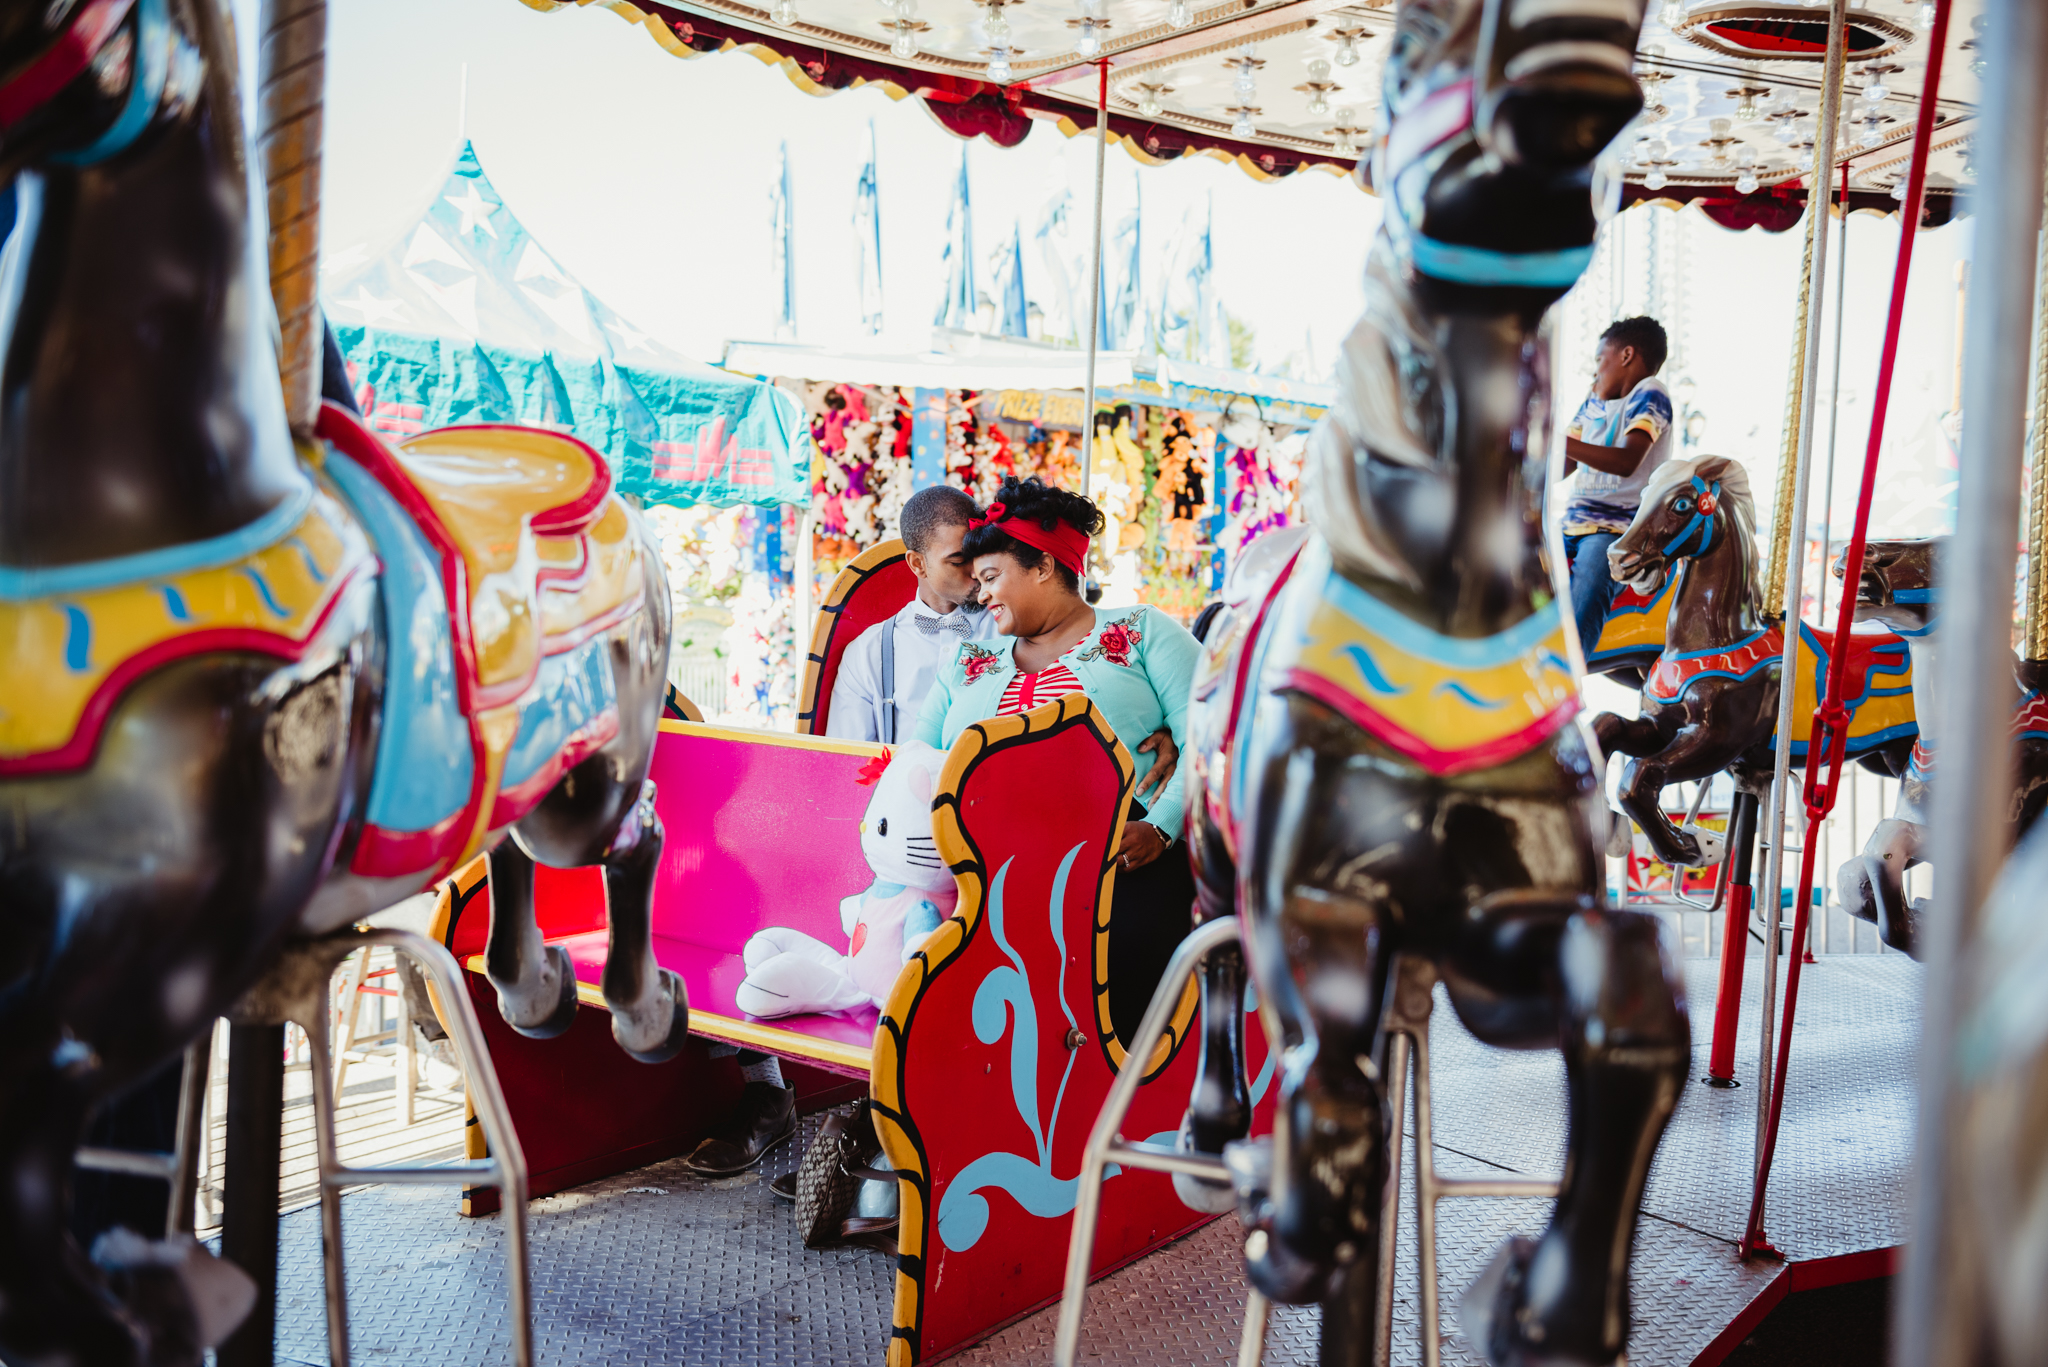 riding-the-carousel-with-hello-kitty-at-the-NC-State-fair.jpg